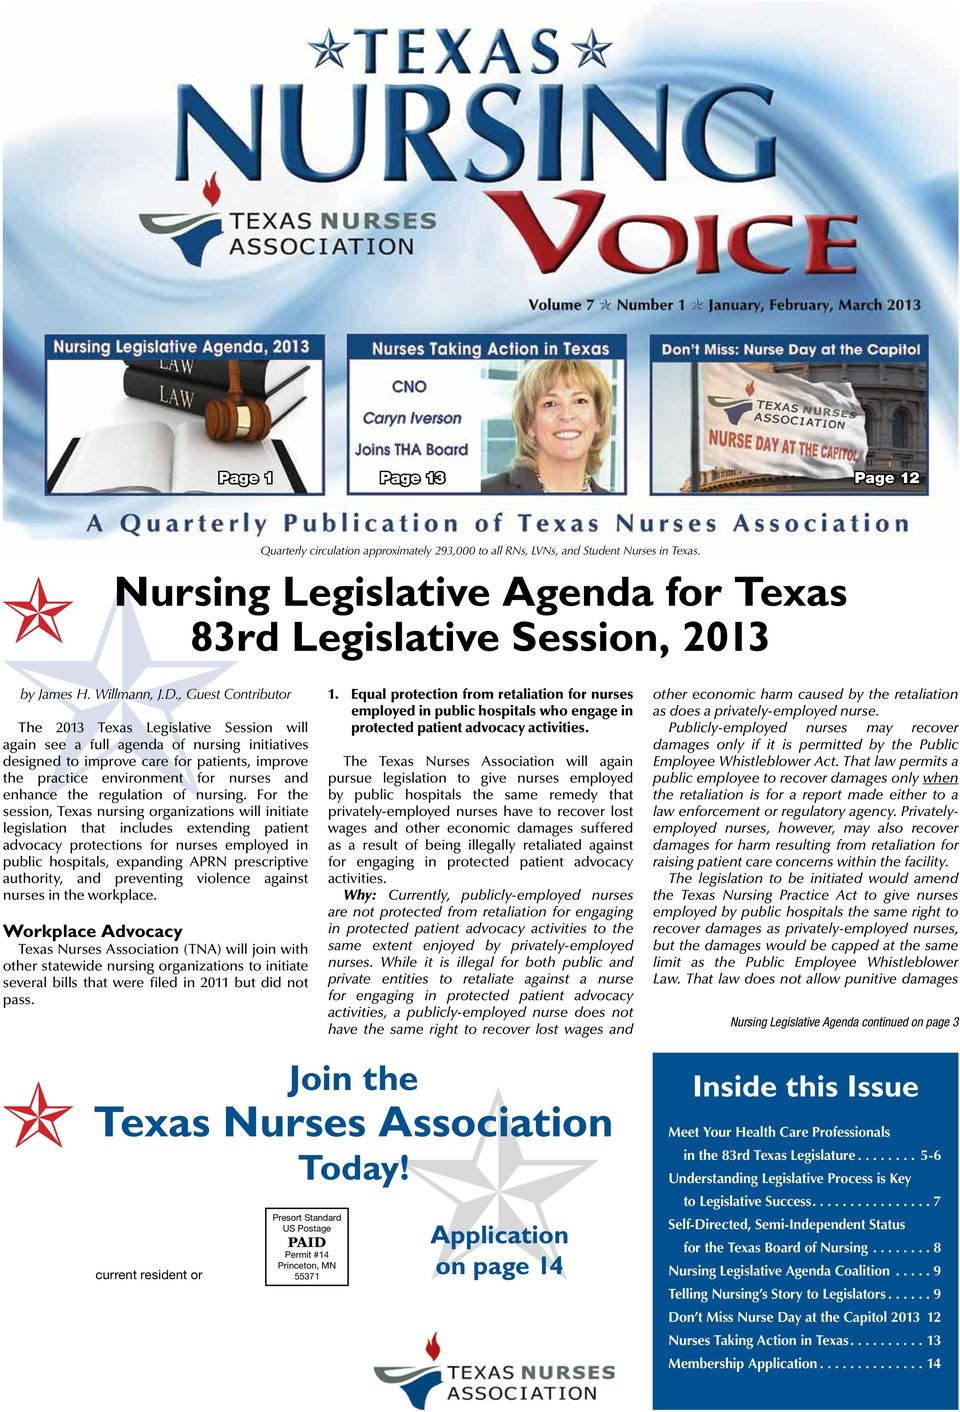 , Guest Contributor The 2013 Texas Legislative Session will again see a full agenda of nursing initiatives designed to improve care for patients, improve the practice environment for nurses and